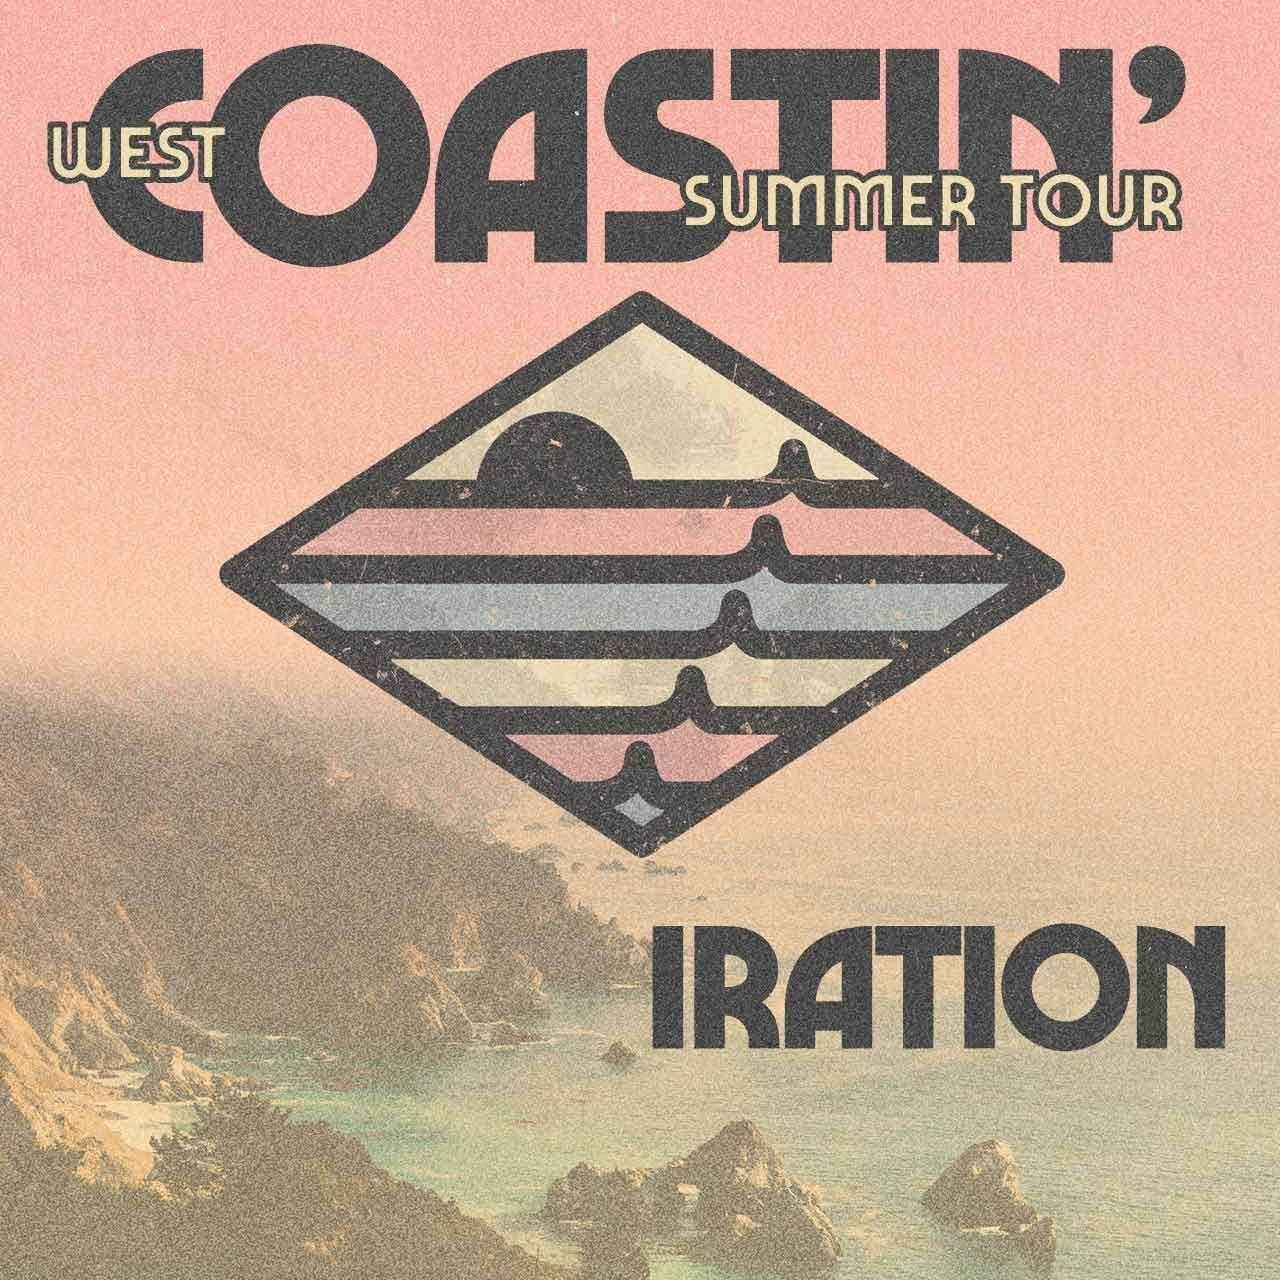 West Coastin' Summer Tour